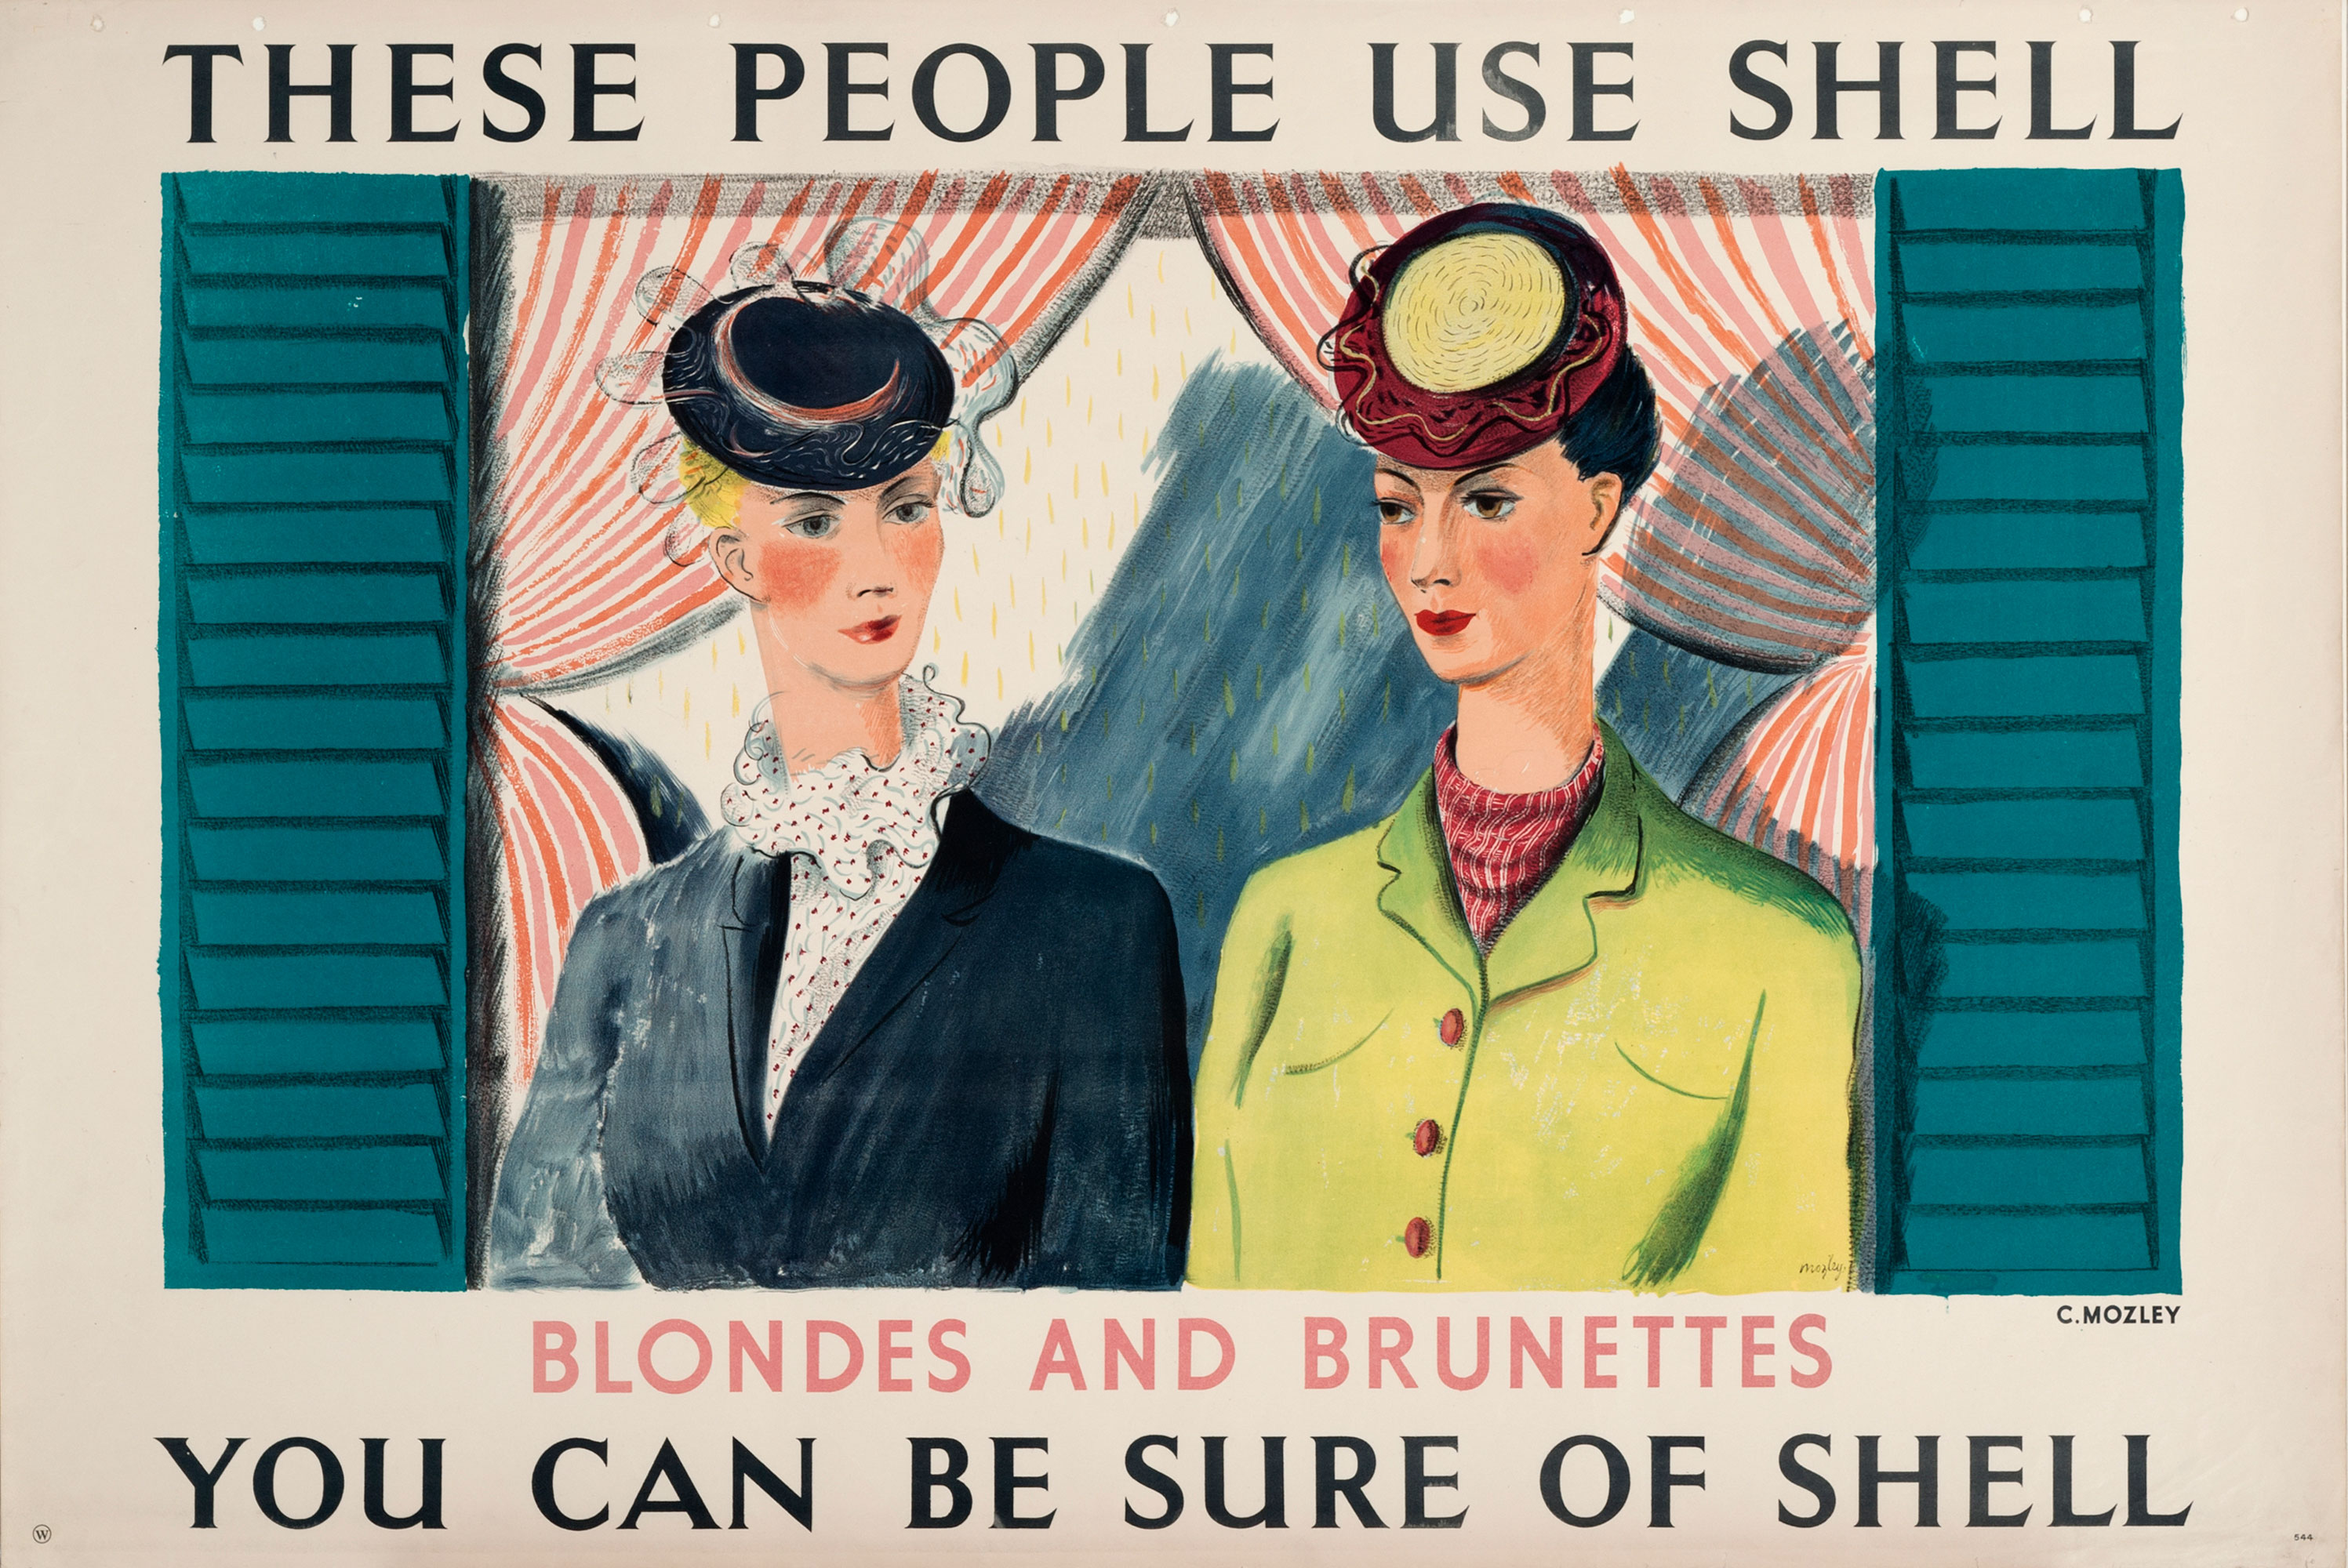 Shell Poster number 544, These people use Shell - Blondes and Brunettes (1939), by Charles Mozley. Painting of two women, one blonde, one dark in hats, standing by a window.